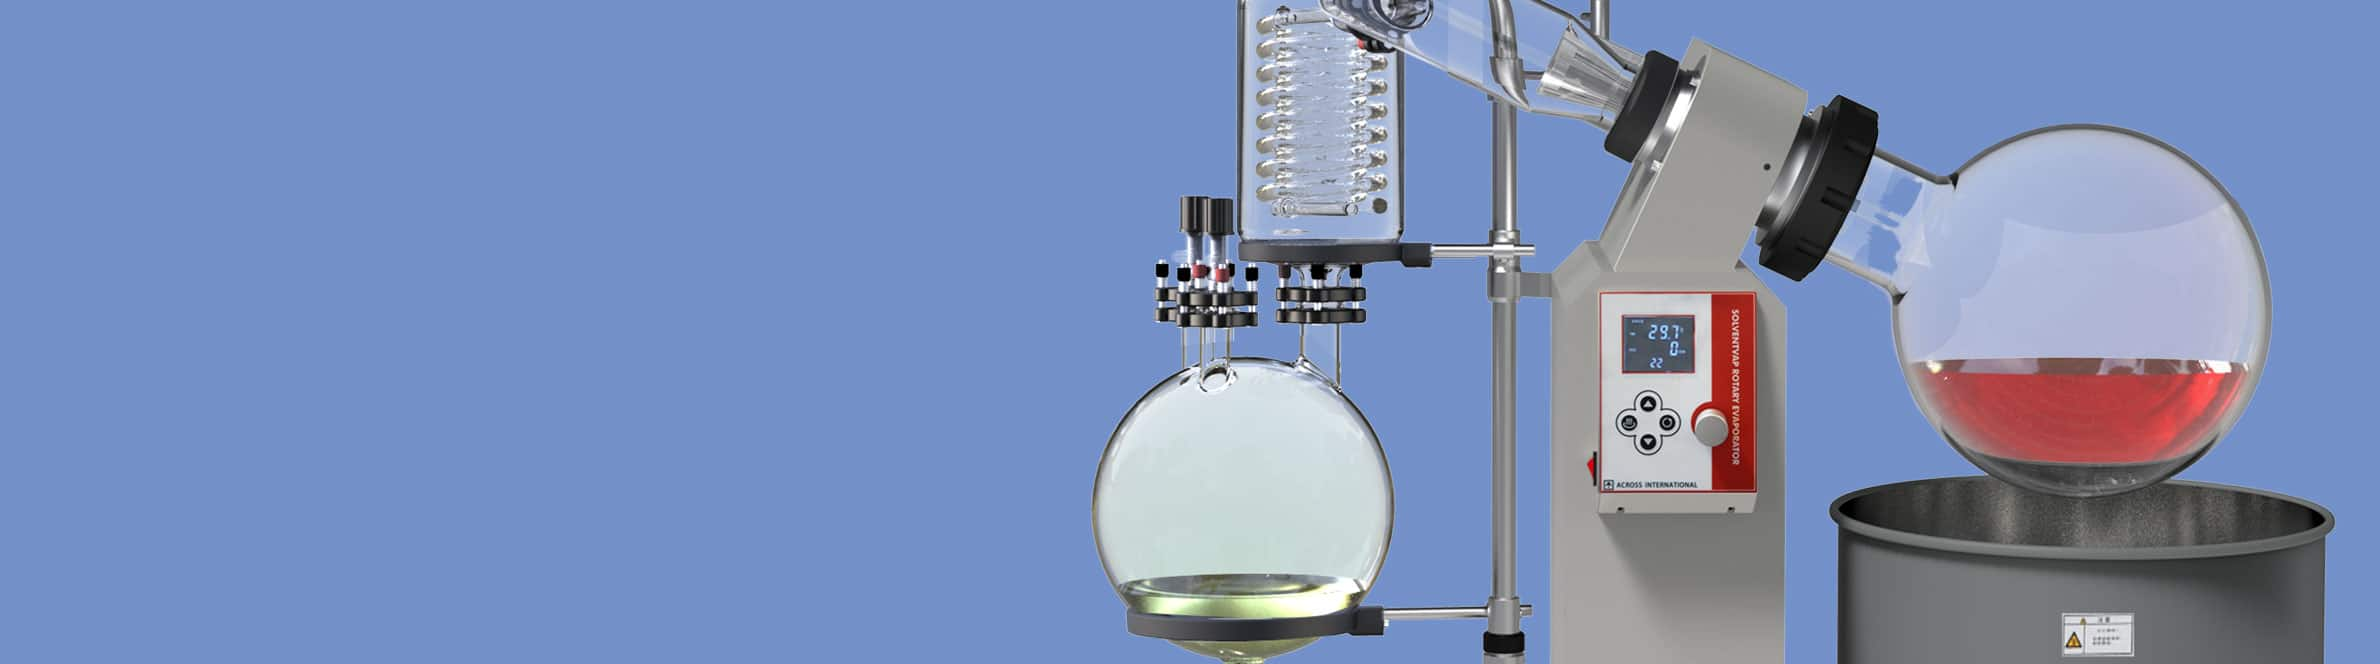 Rotovaps and Rotary Evaporators for Sale Online - Backed by our Price Match Assurance.